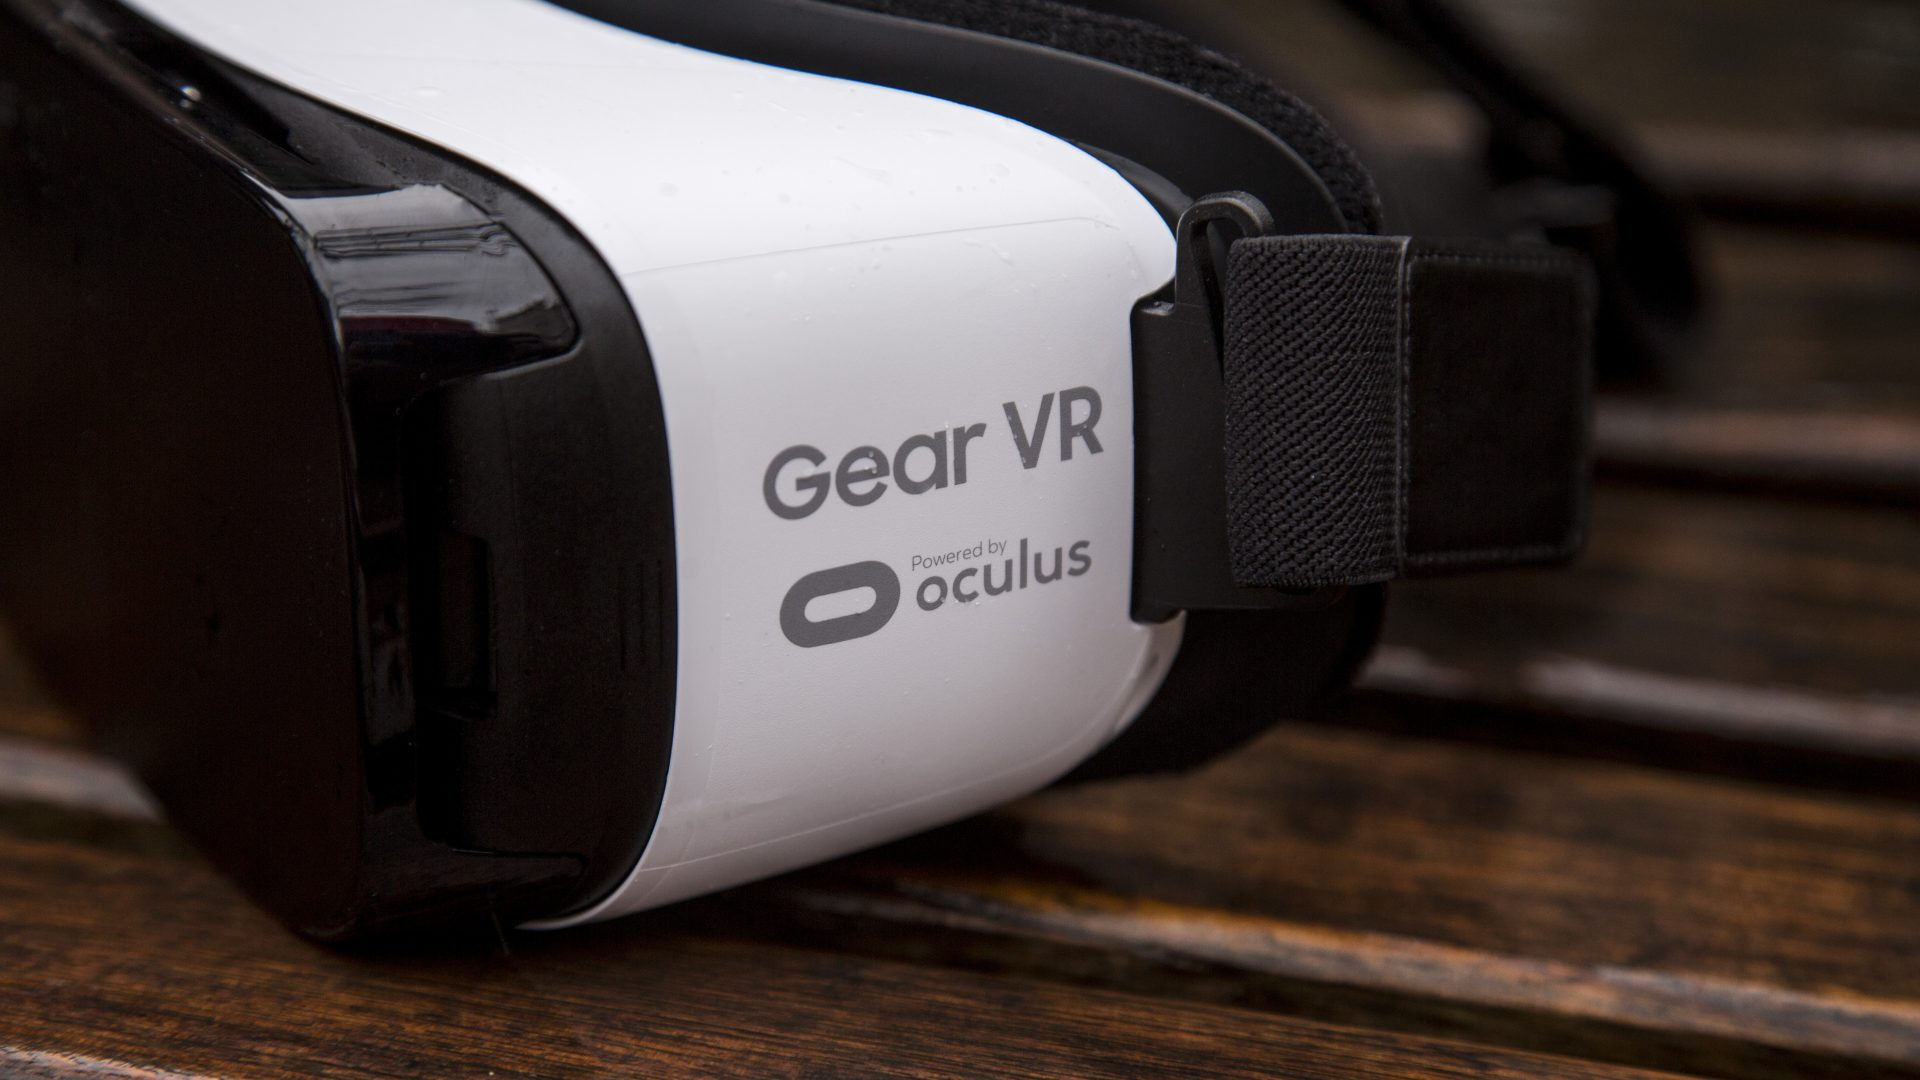 The complete list of Samsung Gear VR compatible phones